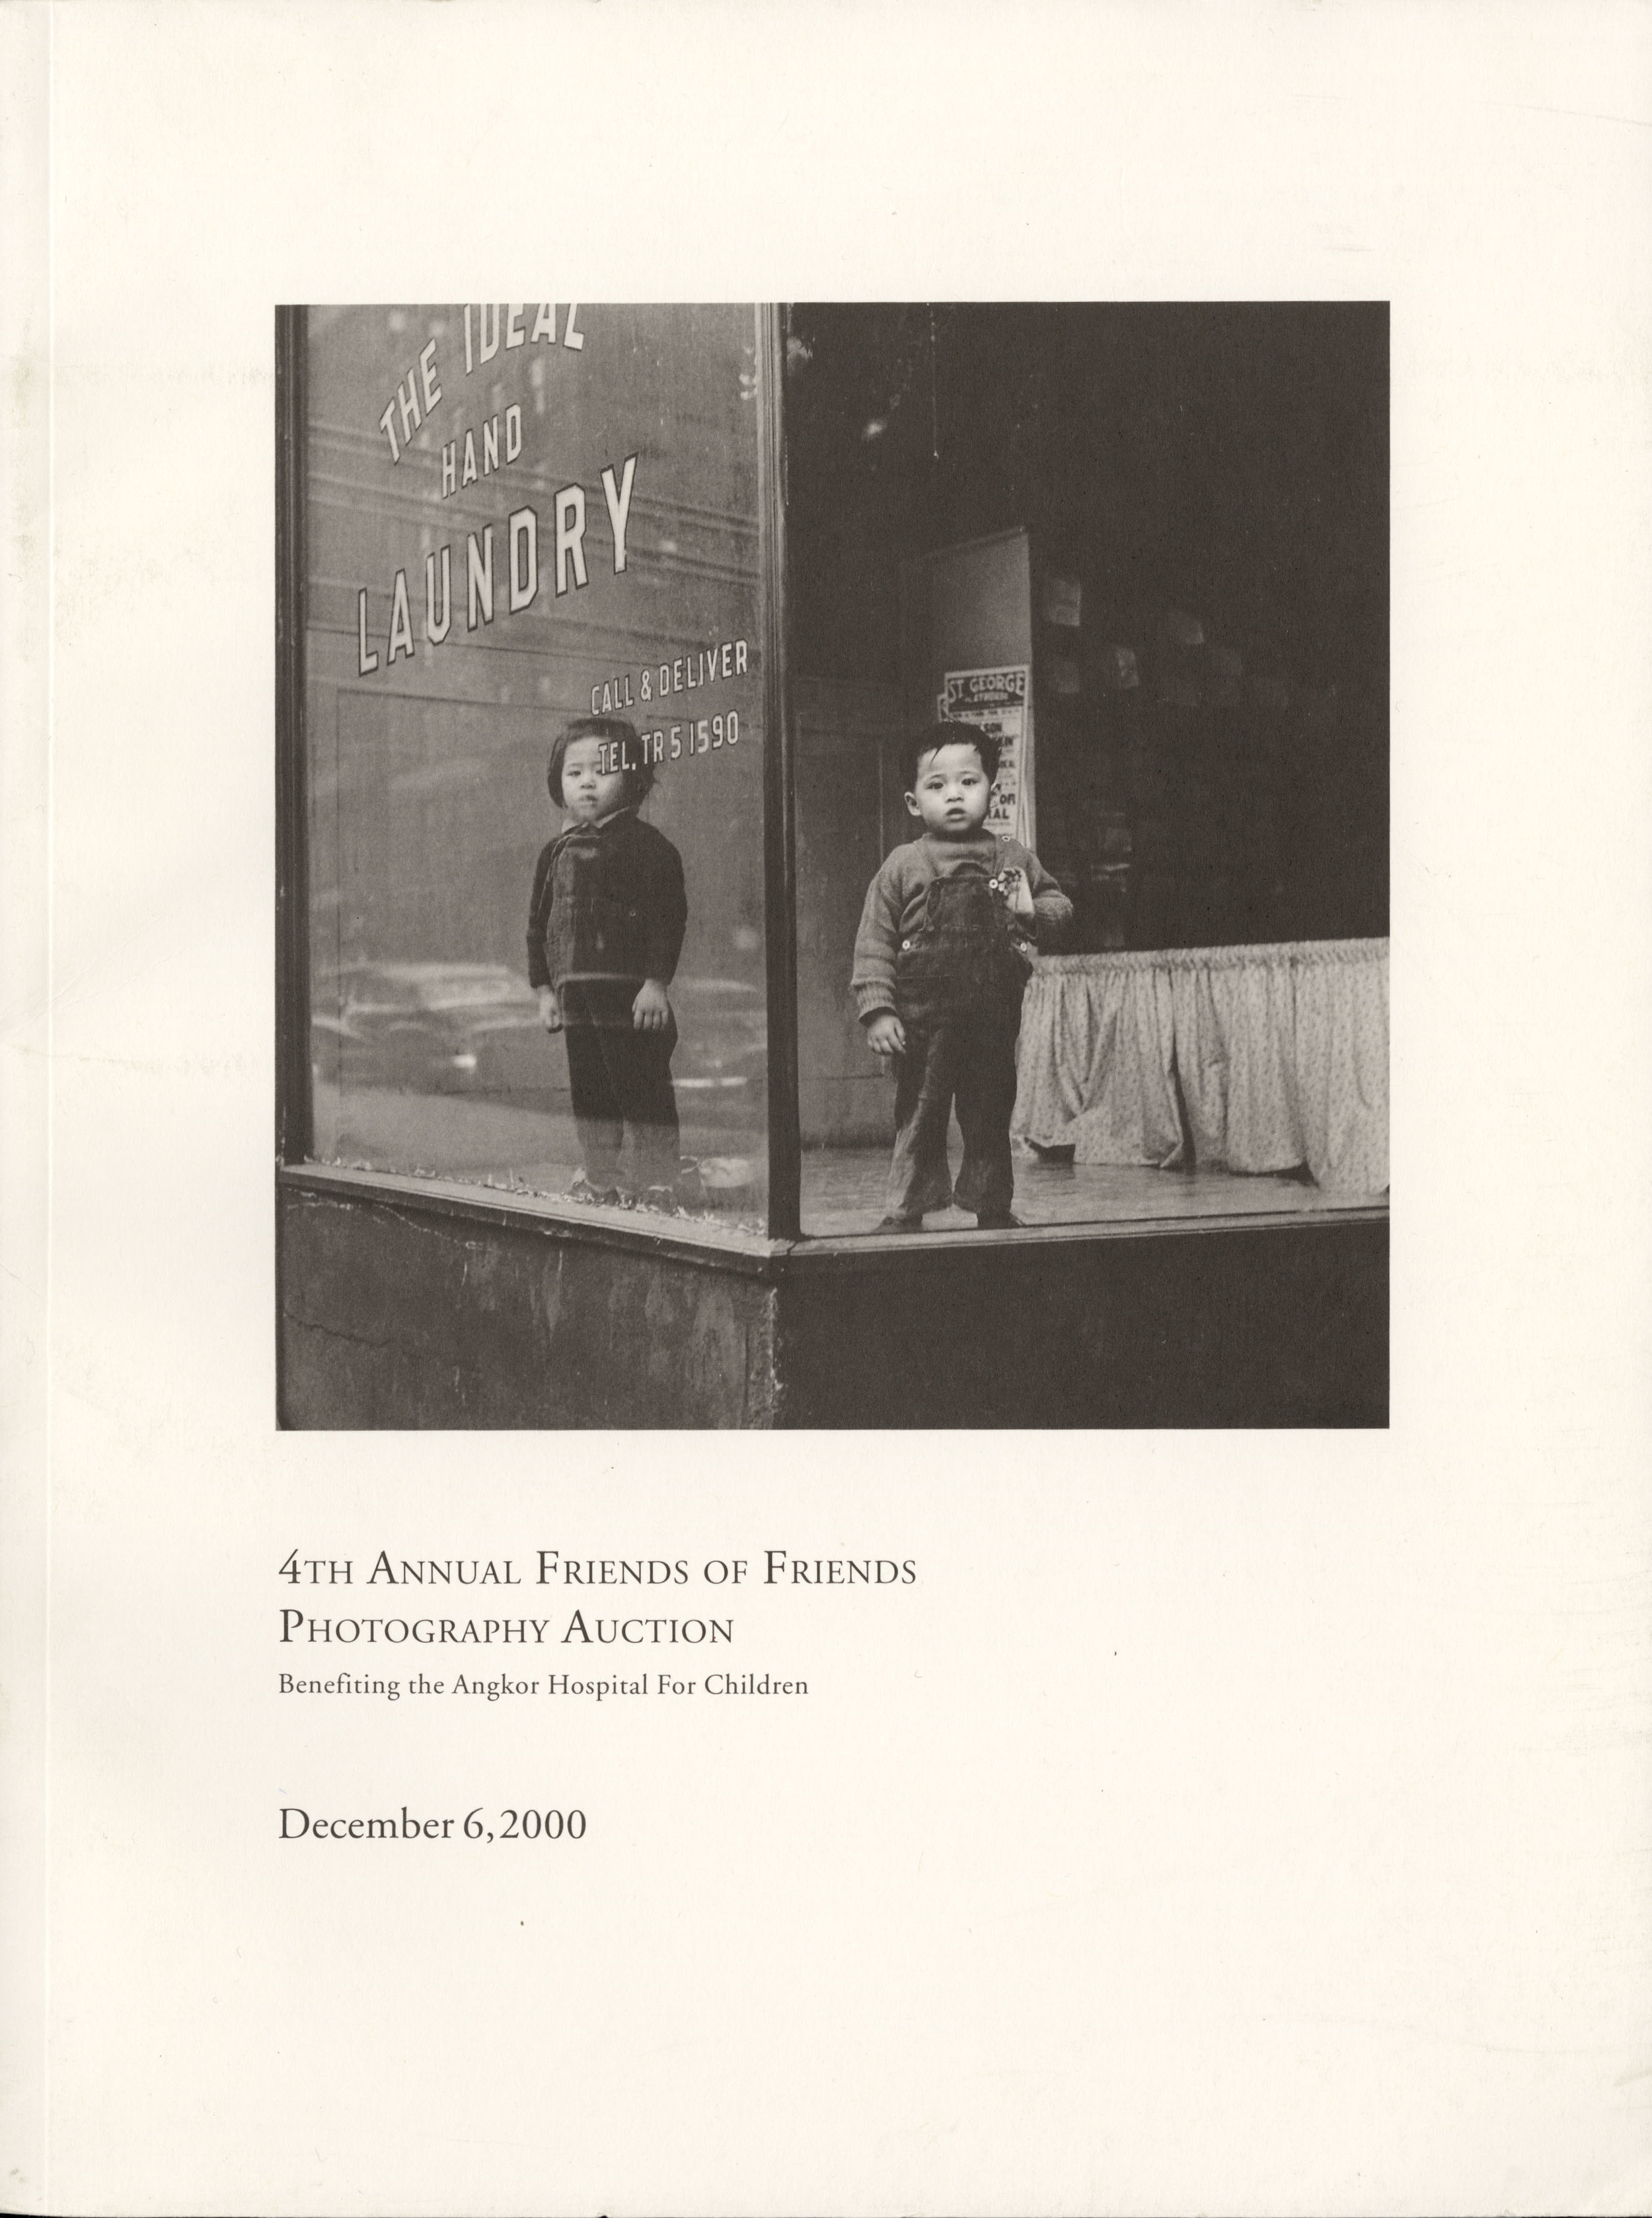 4th Annual Friends of Friends Photography Auction - Auction Catalog - photo - December 2000 001.jpg